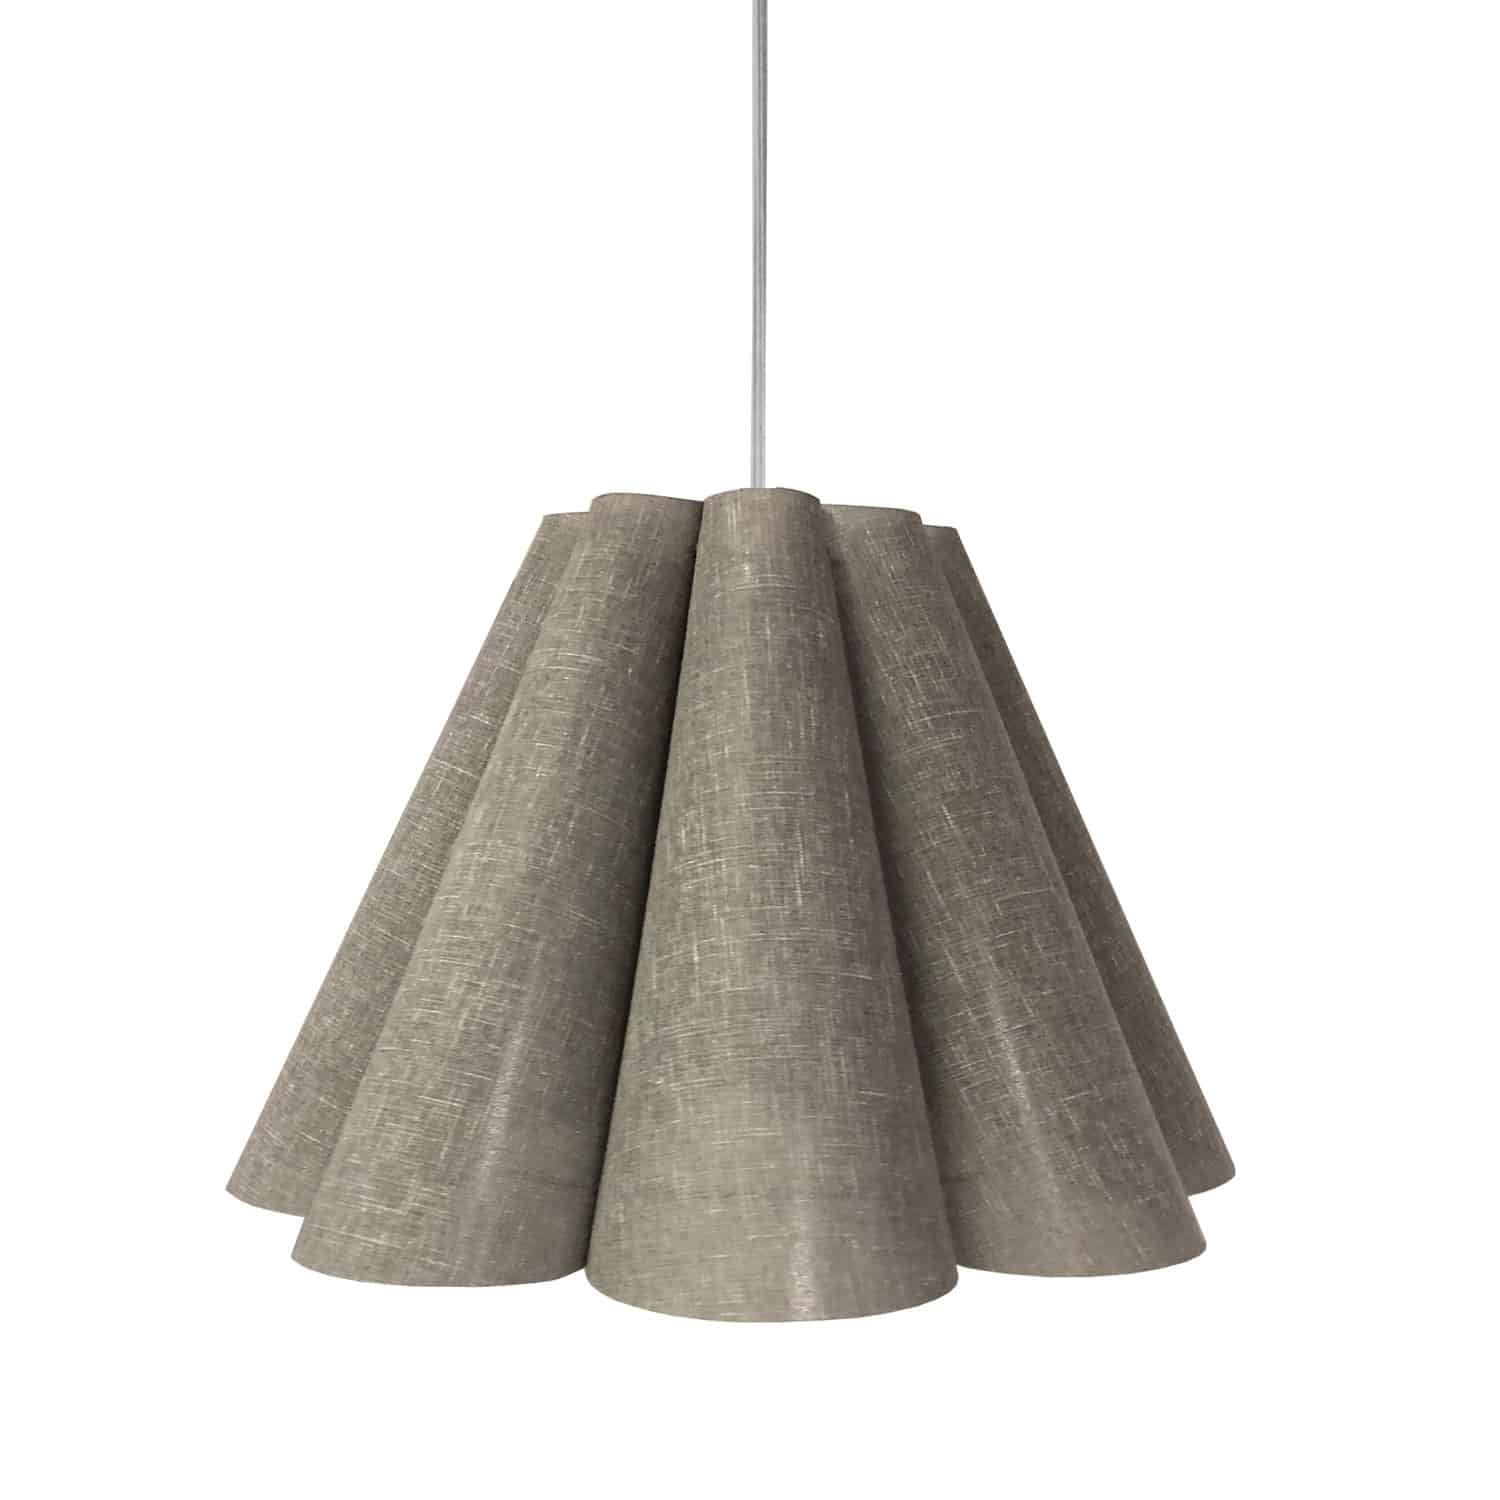 4 Light Kendra Pendant Milano Grey, Medium Polished Chrome